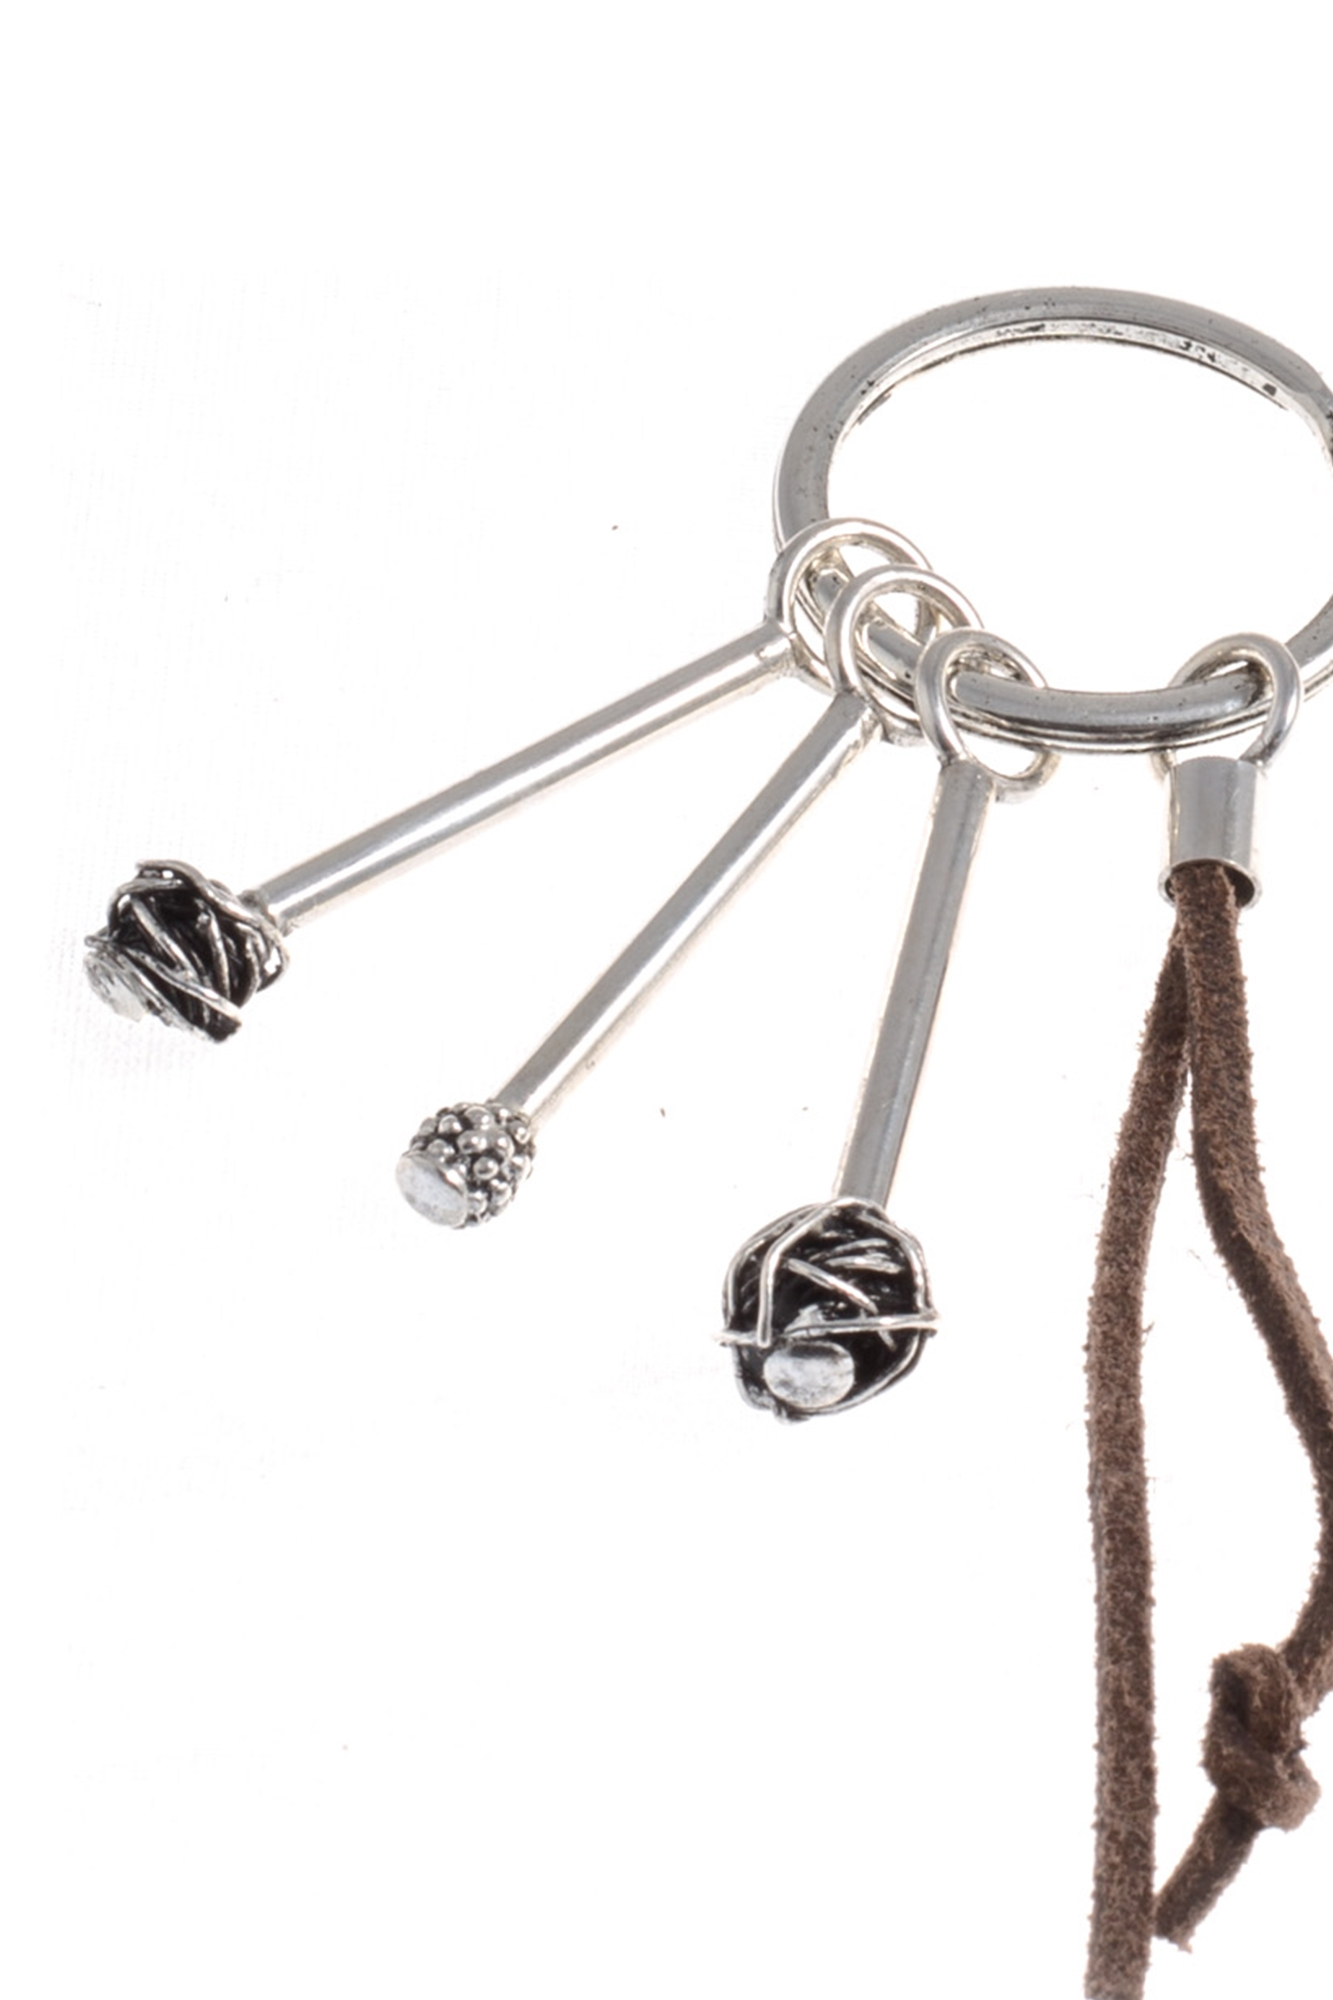 Giacomo Burroni - Silver keyrings with leather